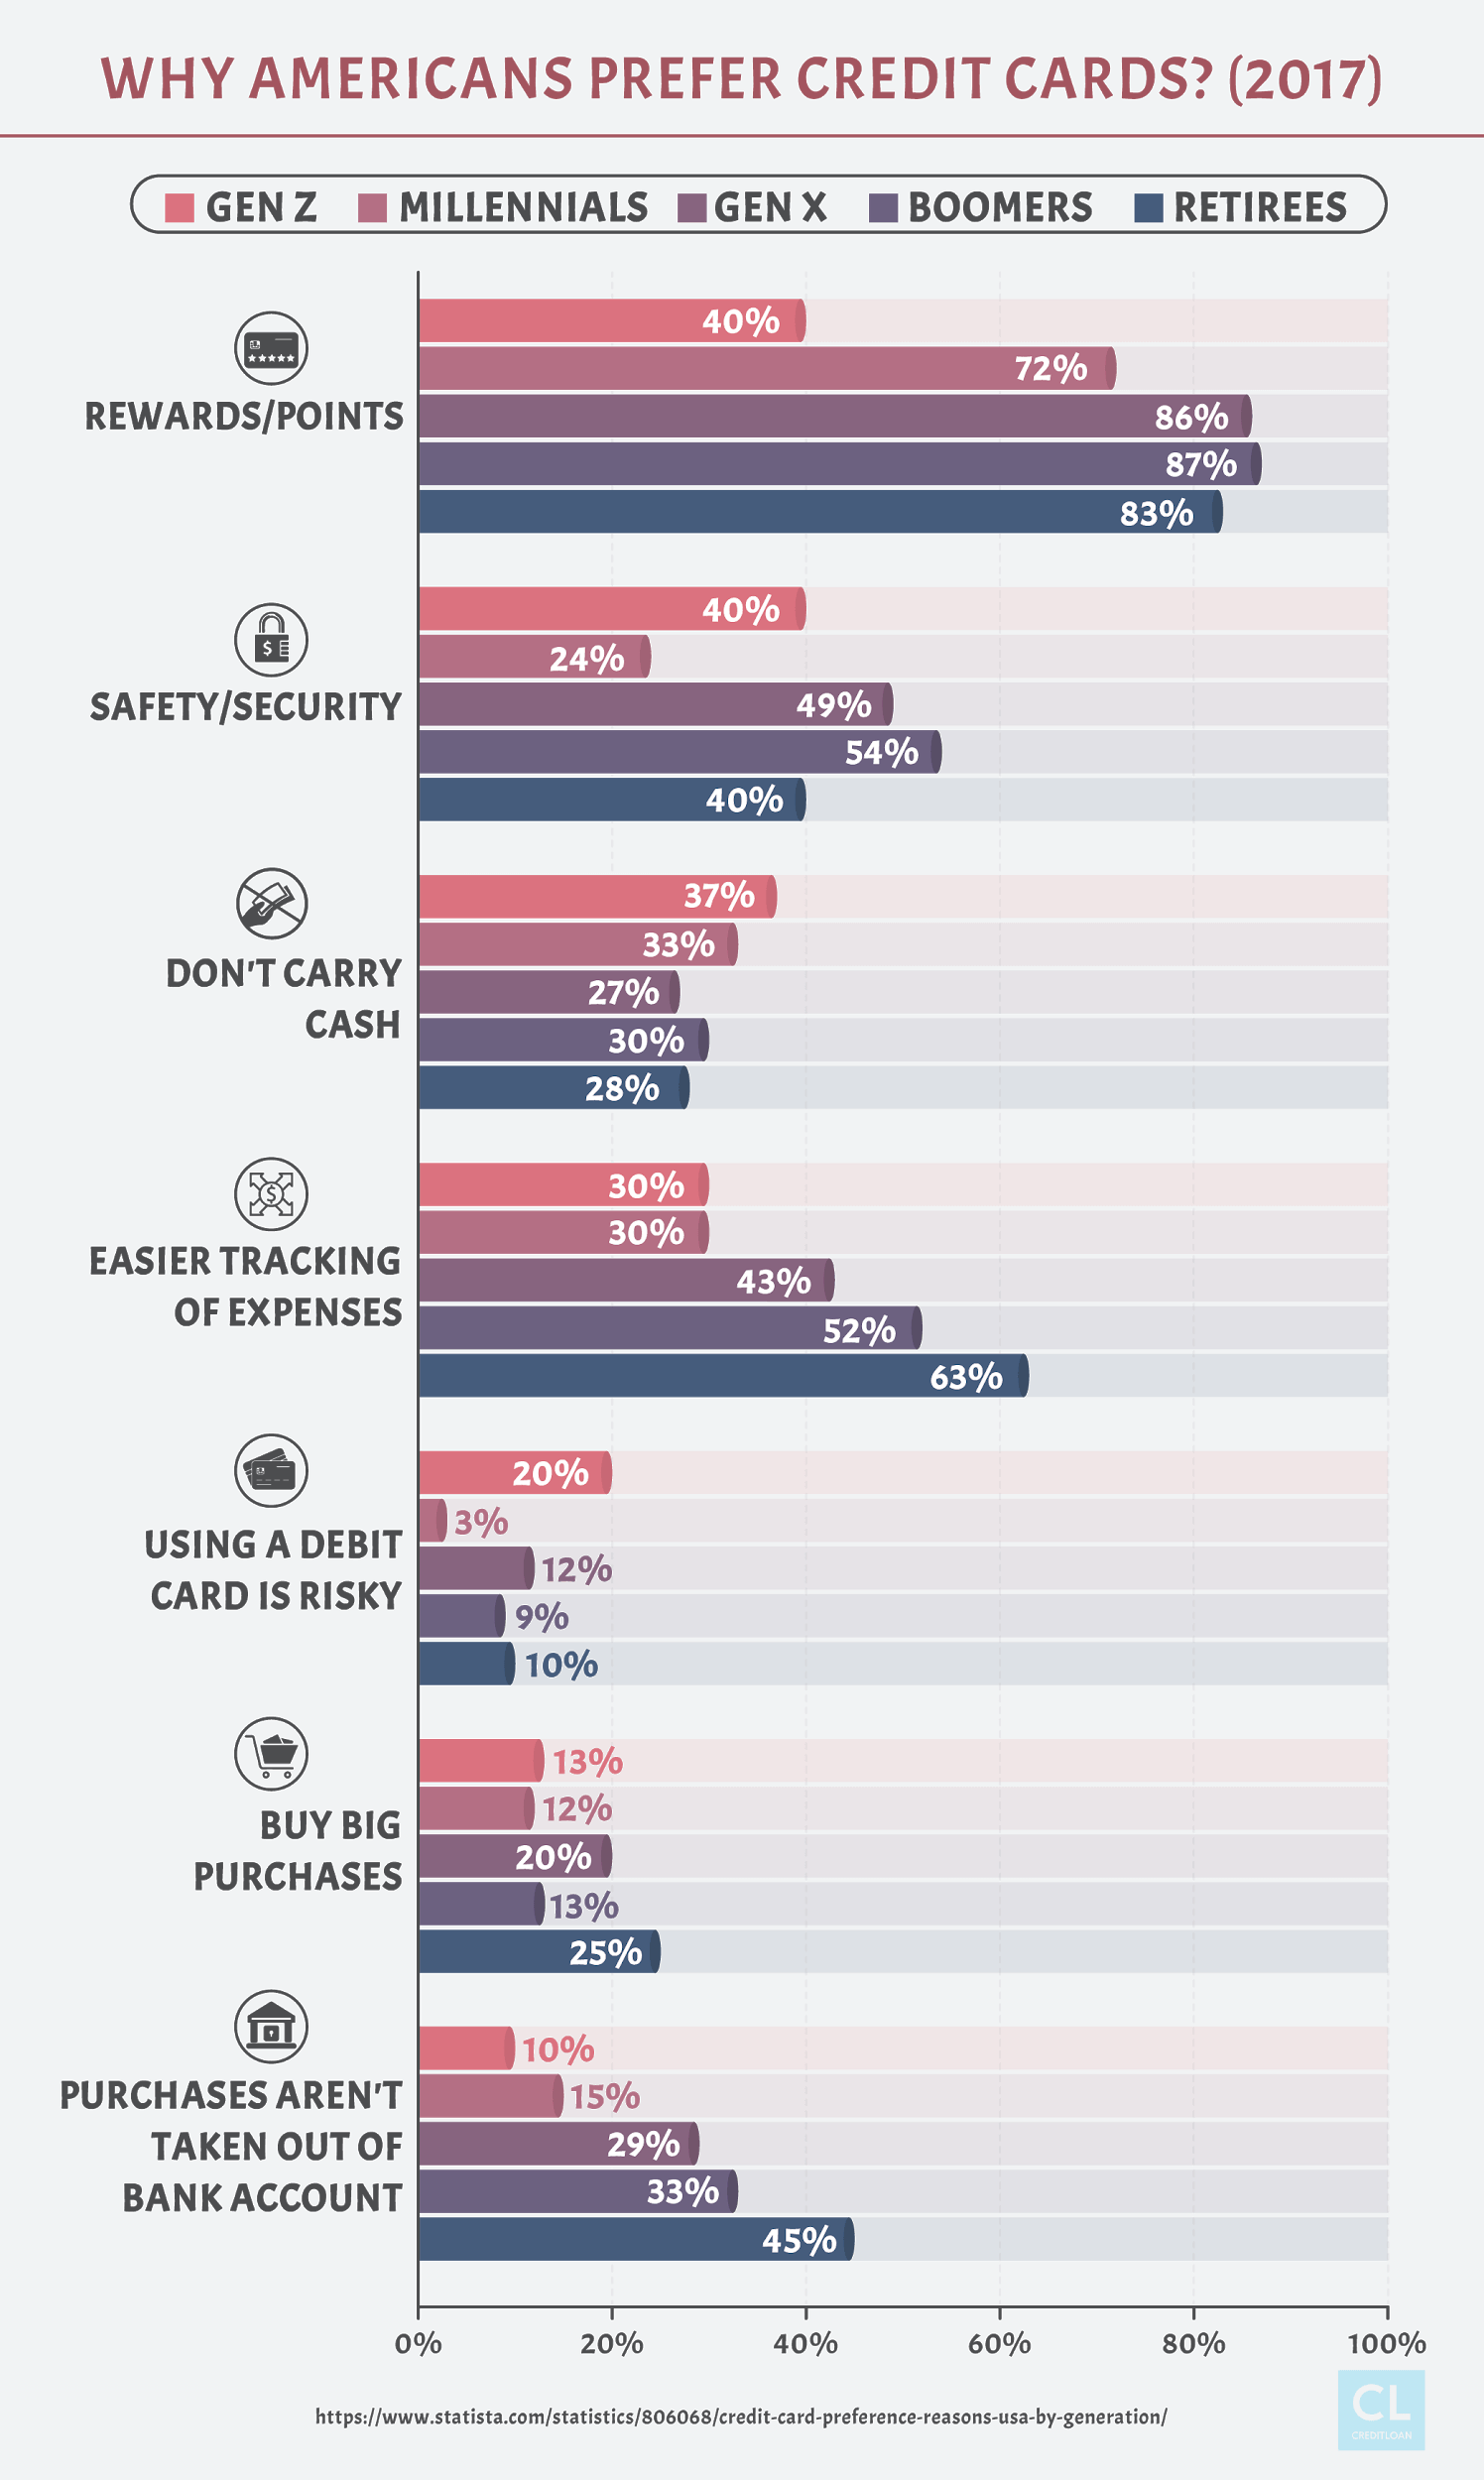 Data Showing Why Americans Prefer Credit Cards